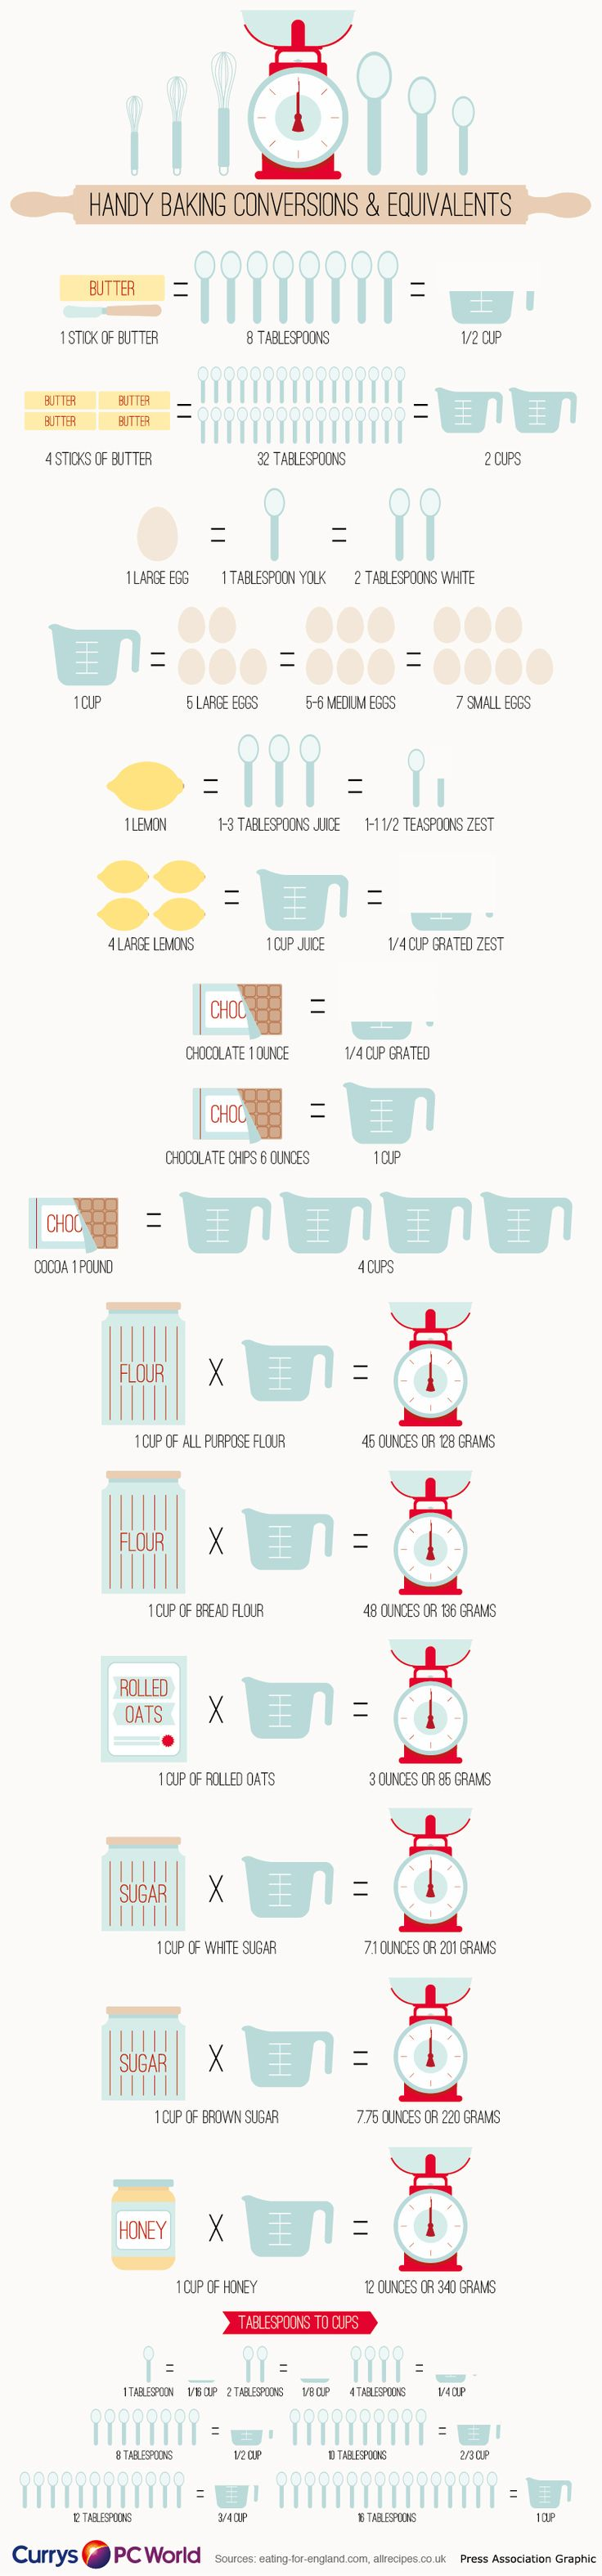 Best 25 baking conversion ideas on pinterest baking conversion 10 amazing graphics to make you a baking expert nvjuhfo Images